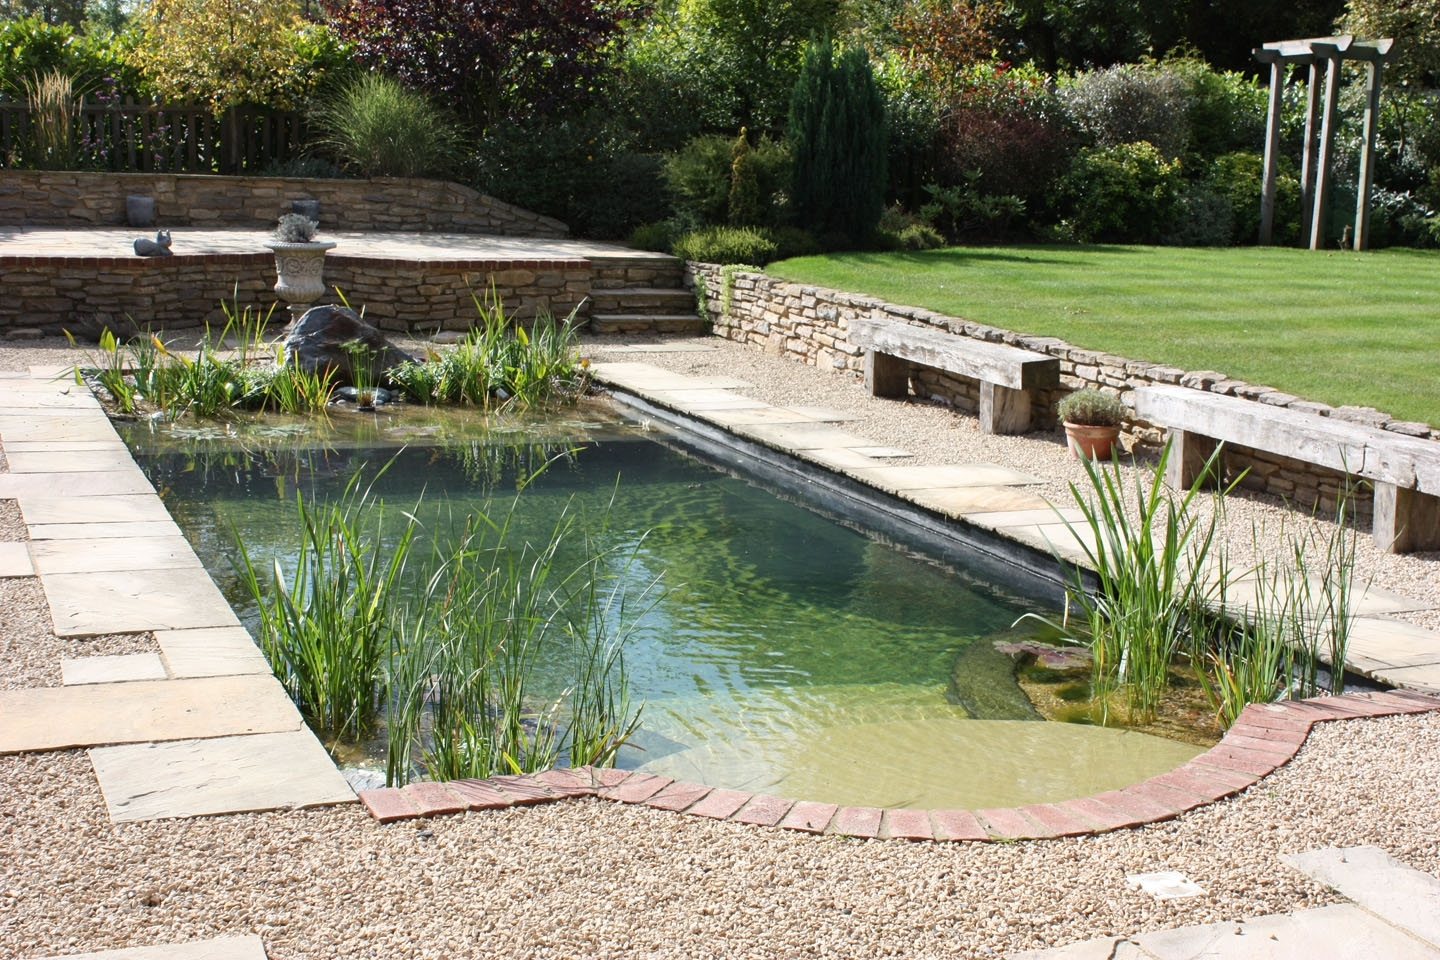 Gartenart | Portfolio | Simon and Lesley Wood, Kent